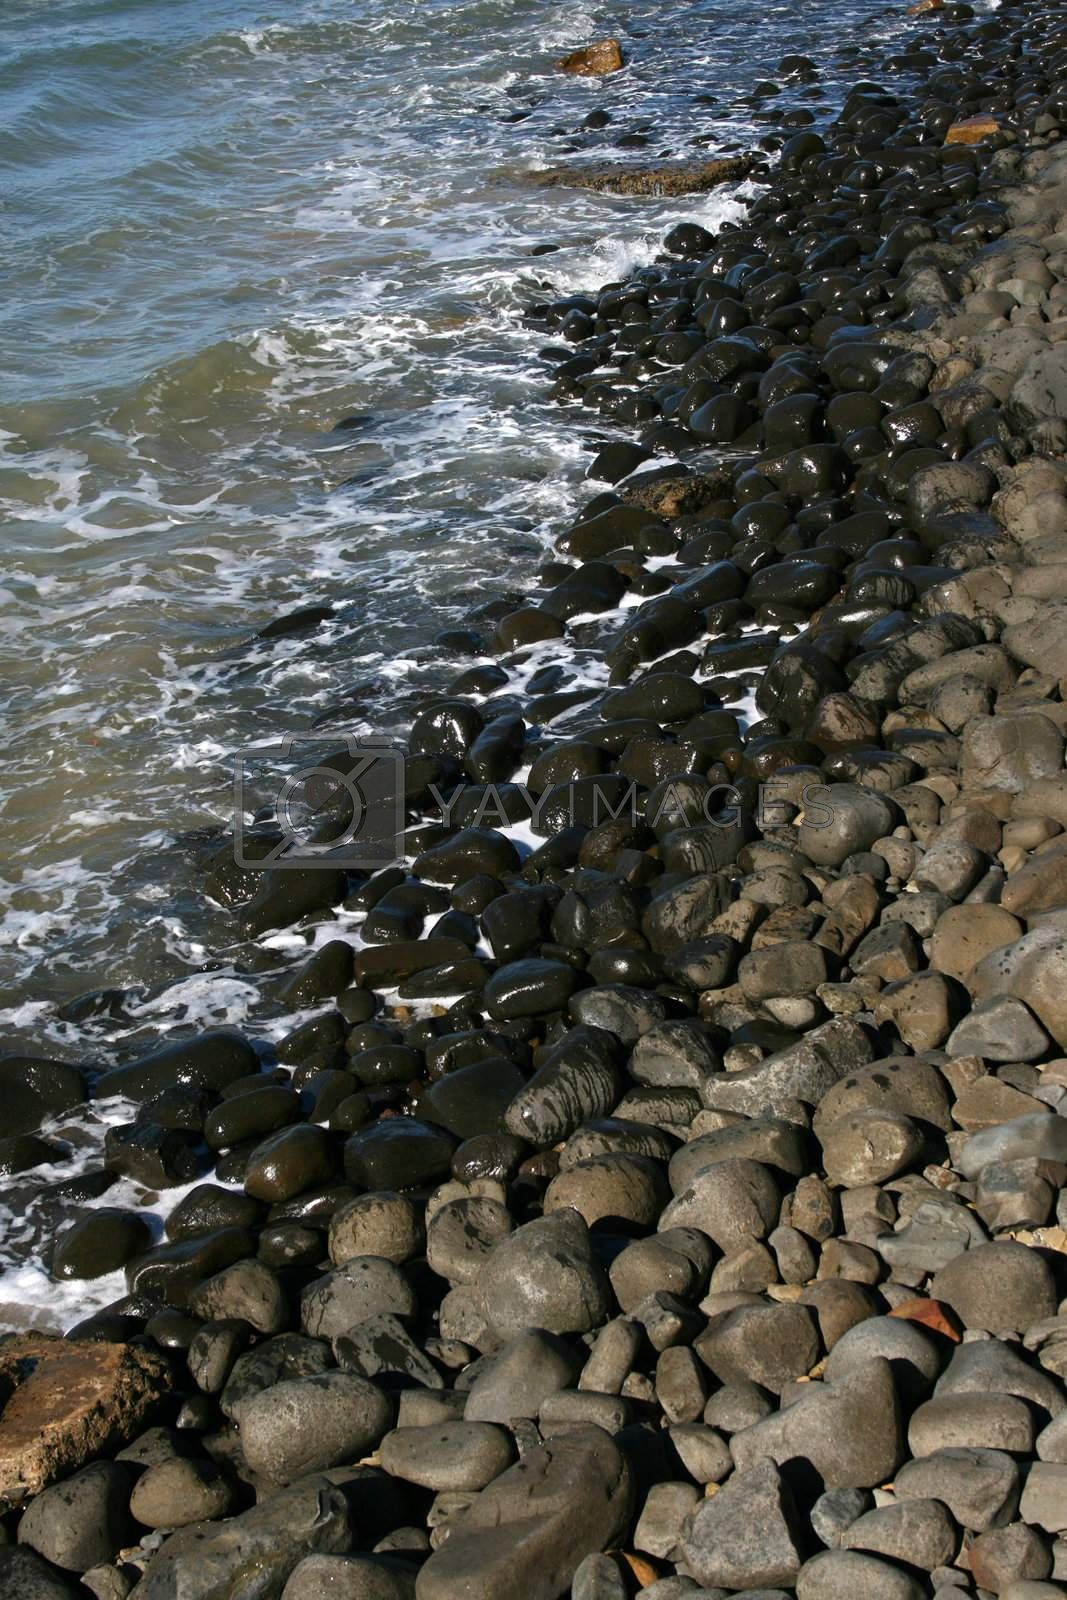 Half dry half wet pebbles with water ebb and flow